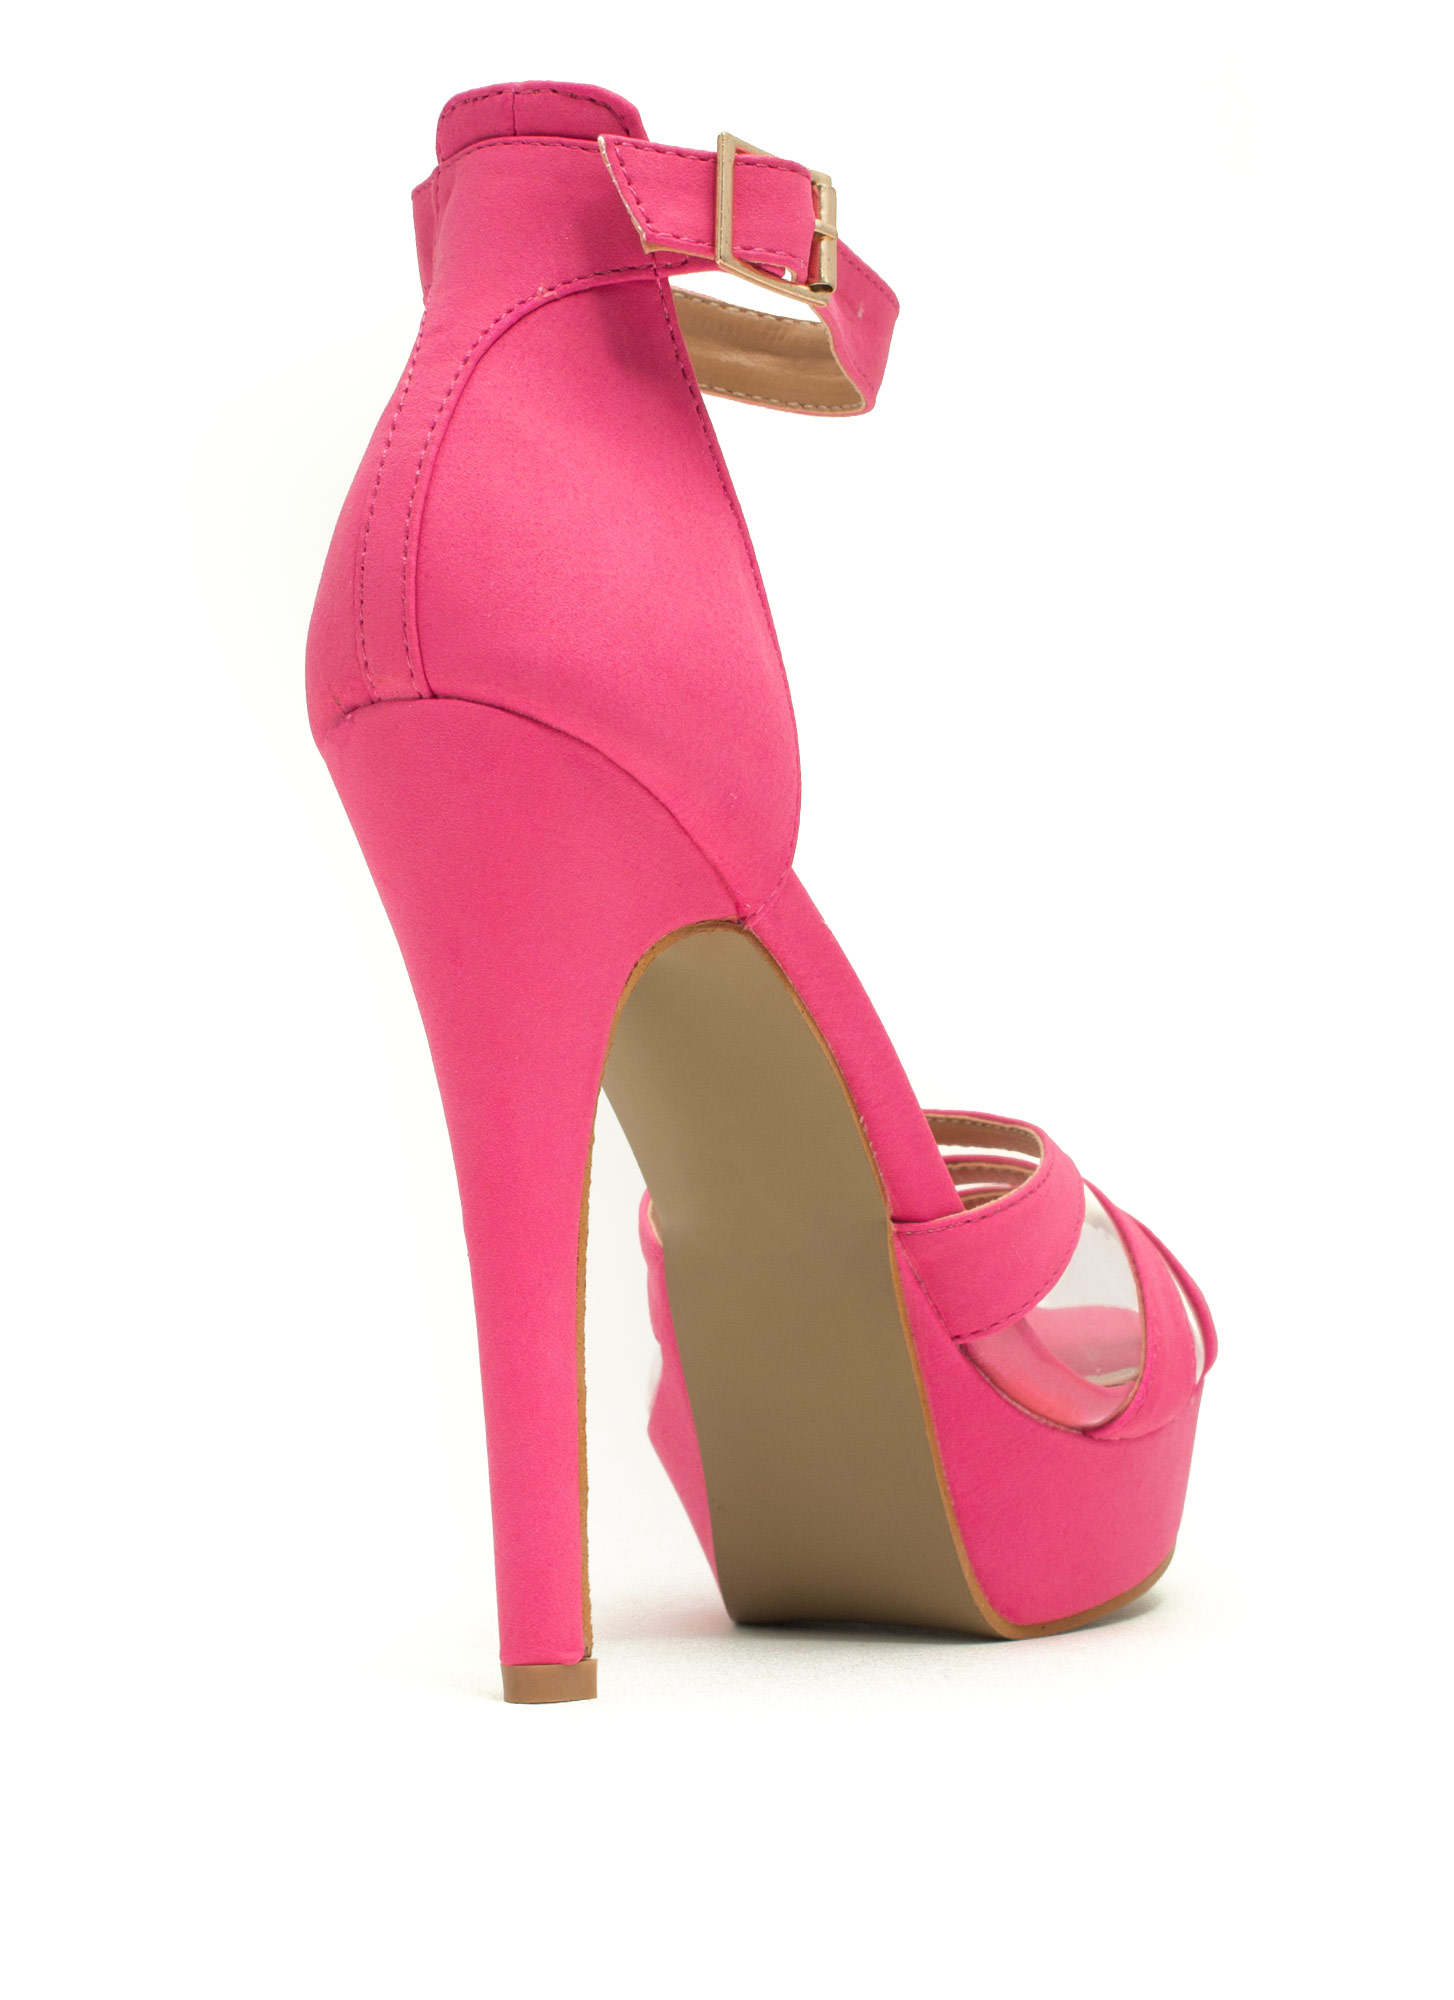 Clearly Strappy Faux Nubuck Heels HOTPINK